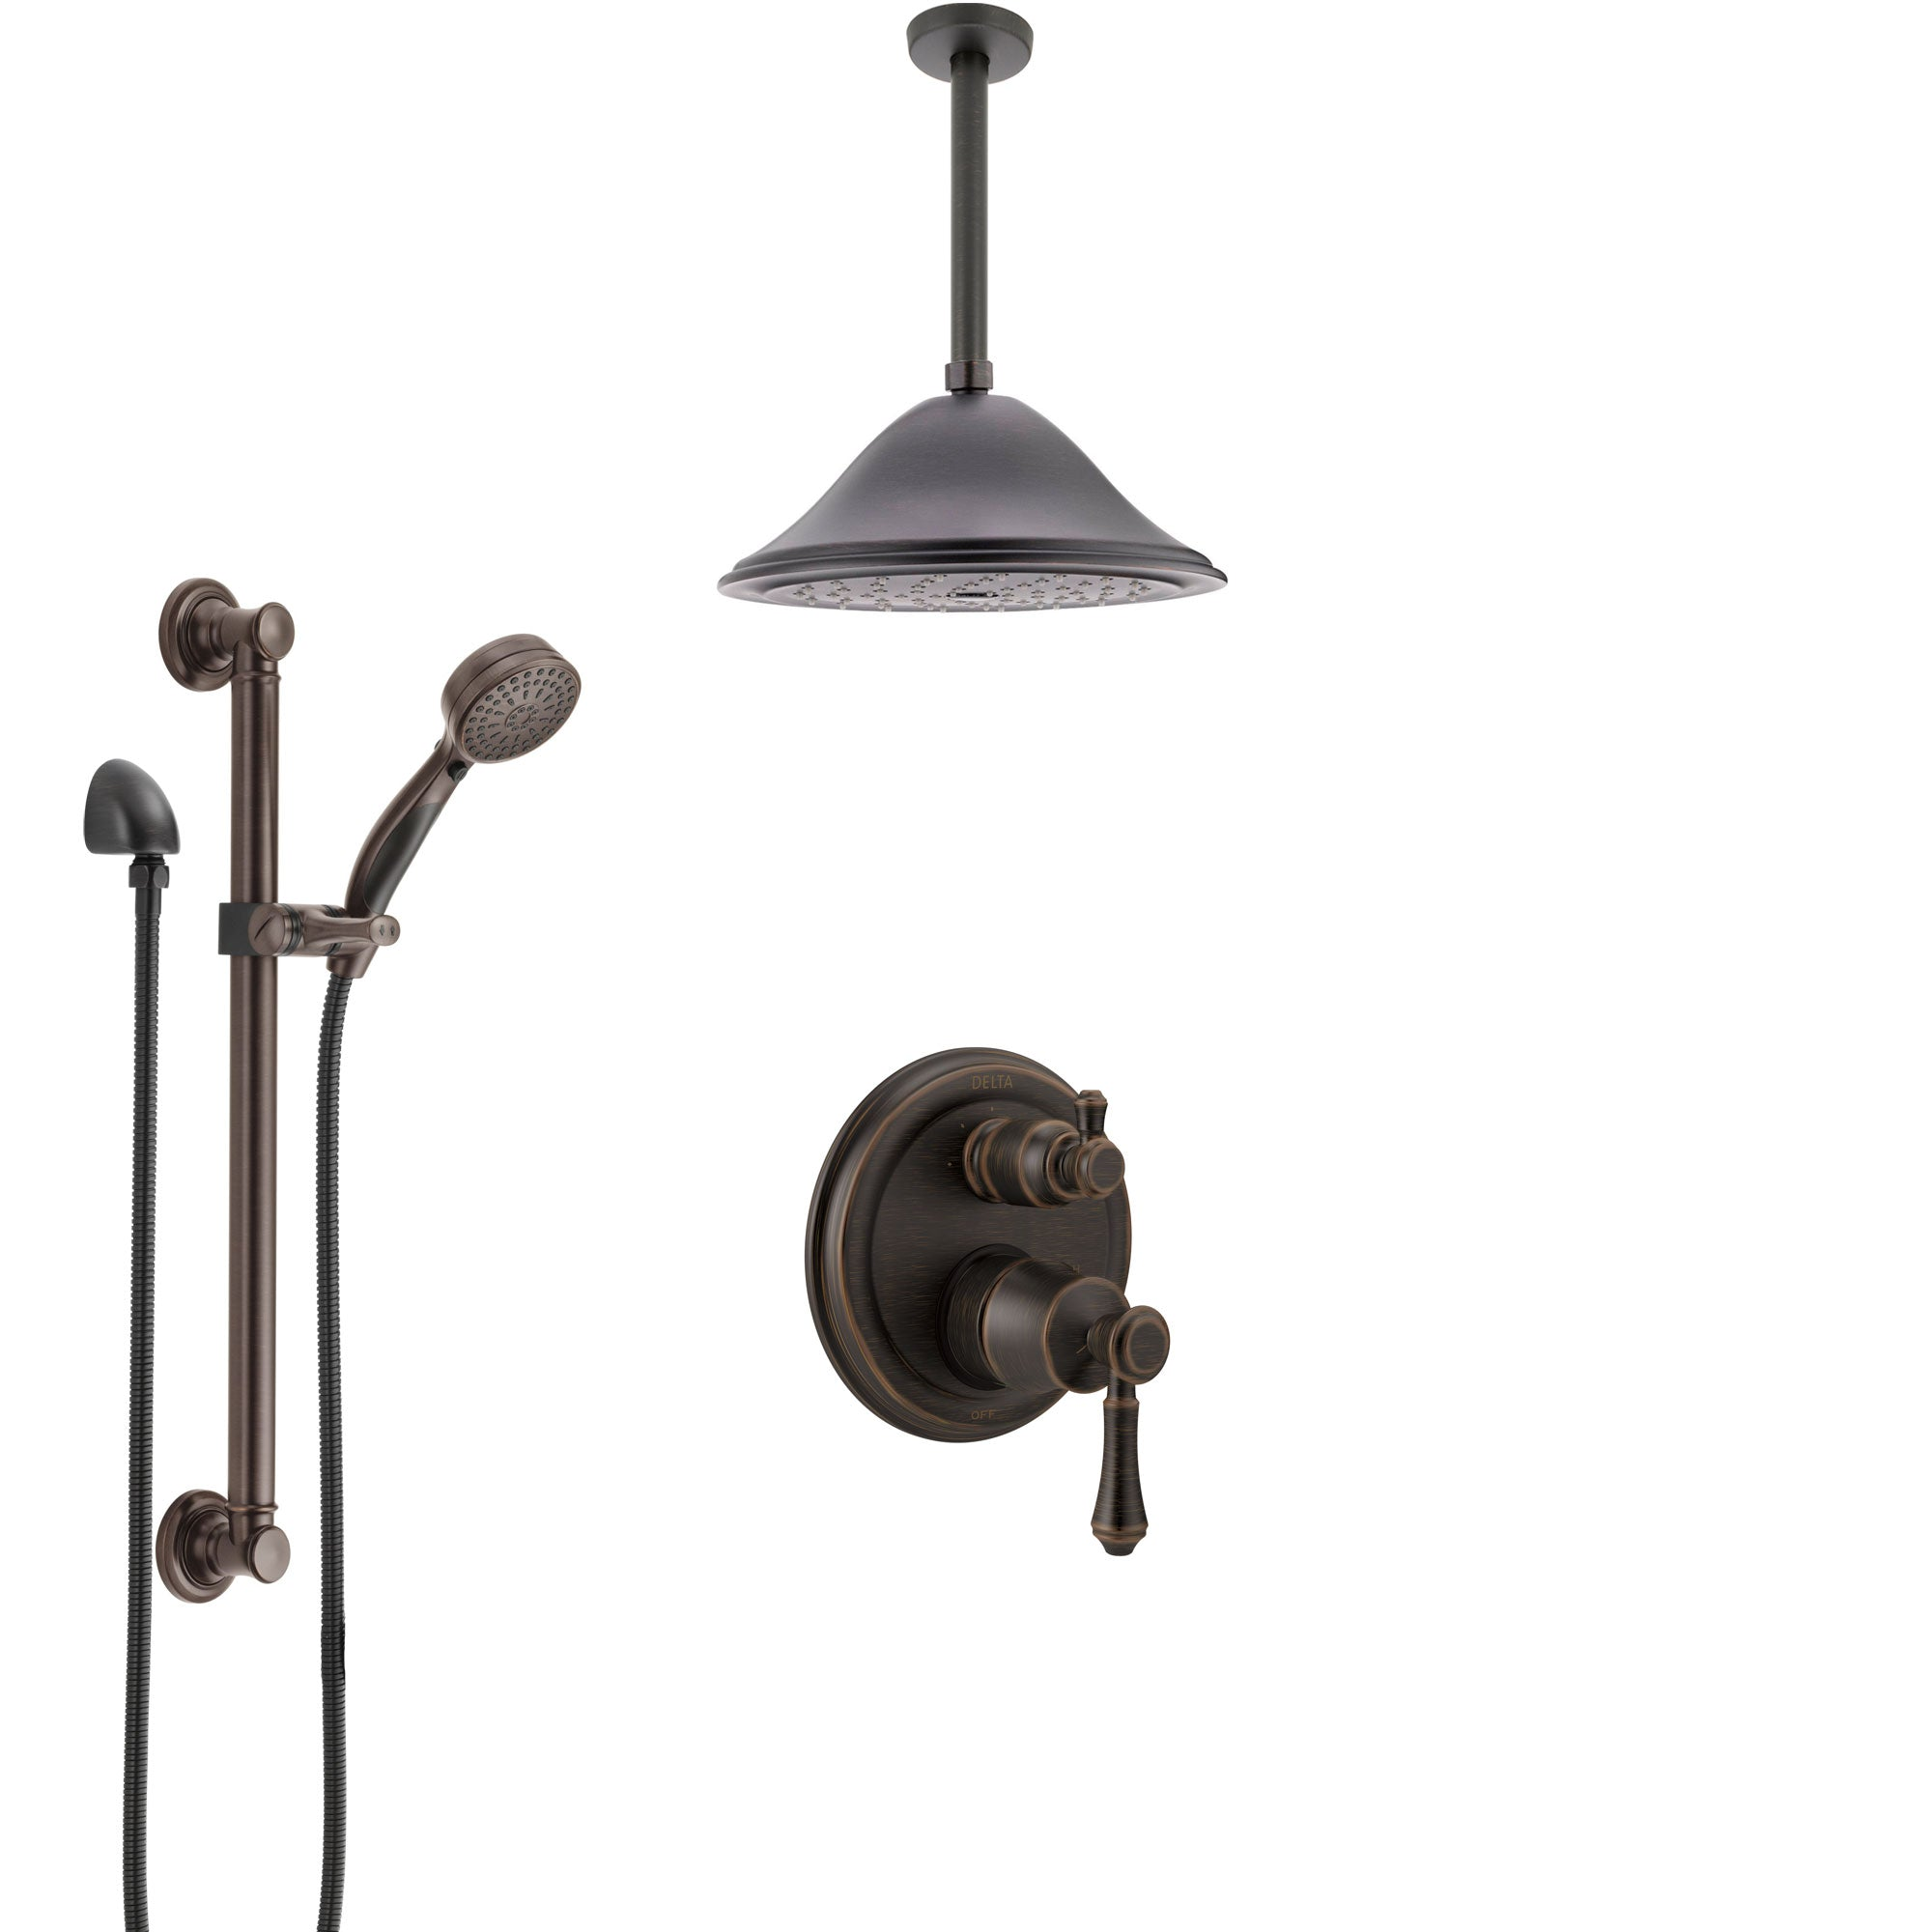 delta cassidy venetian bronze shower system with control handle